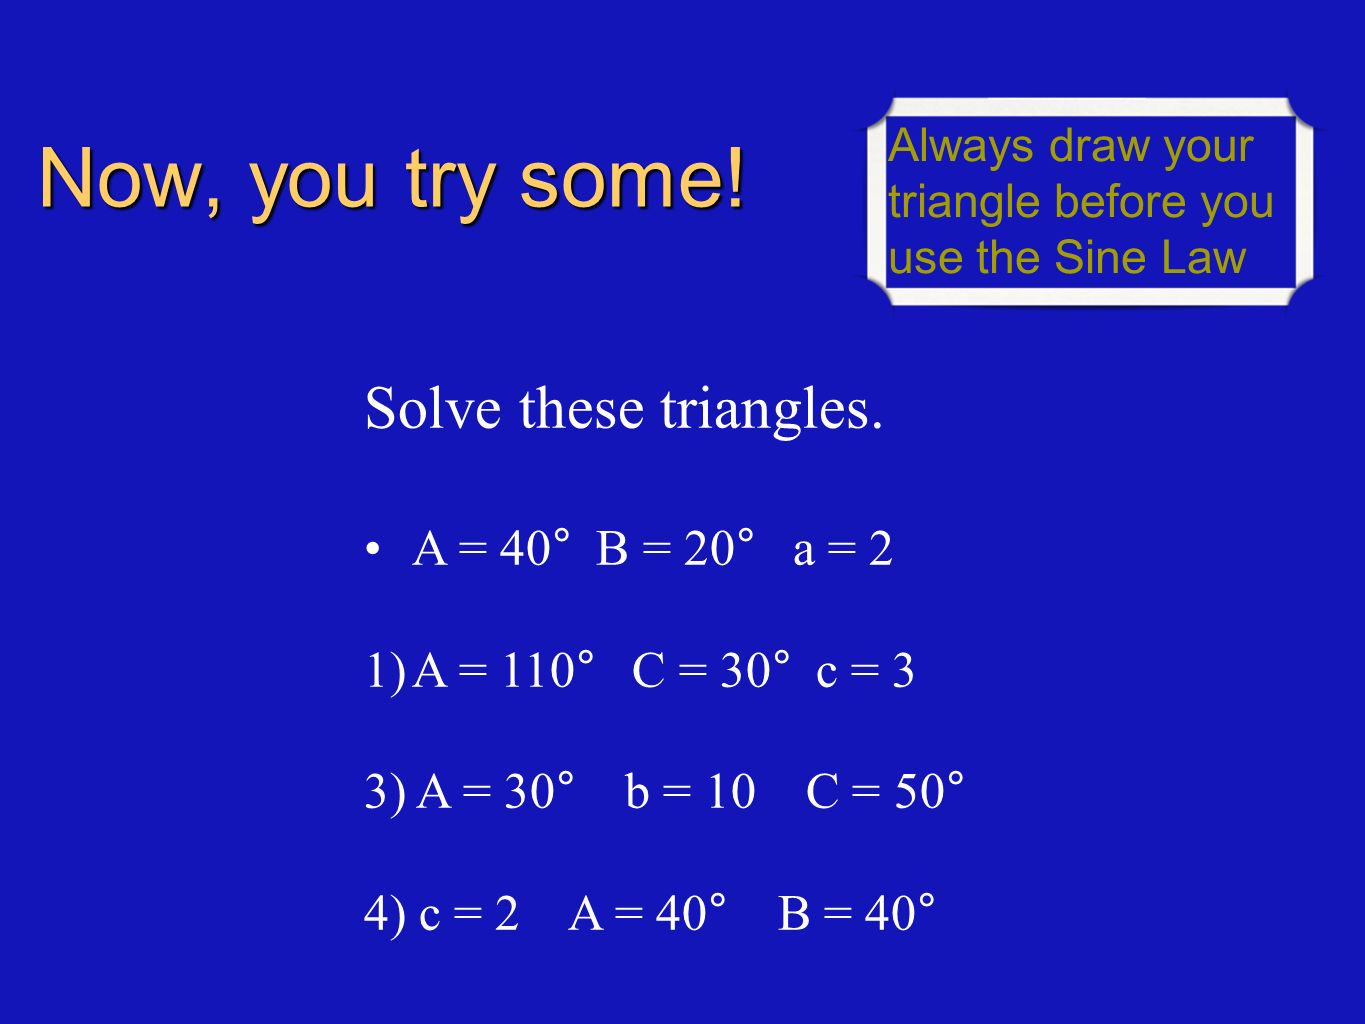 Now, you try some! Solve these triangles. A = 40° B = 20° a = 2 1)A = 110° C = 30° c = 3 3) A = 30° b = 10 C = 50° 4) c = 2 A = 40° B = 40° Always dra